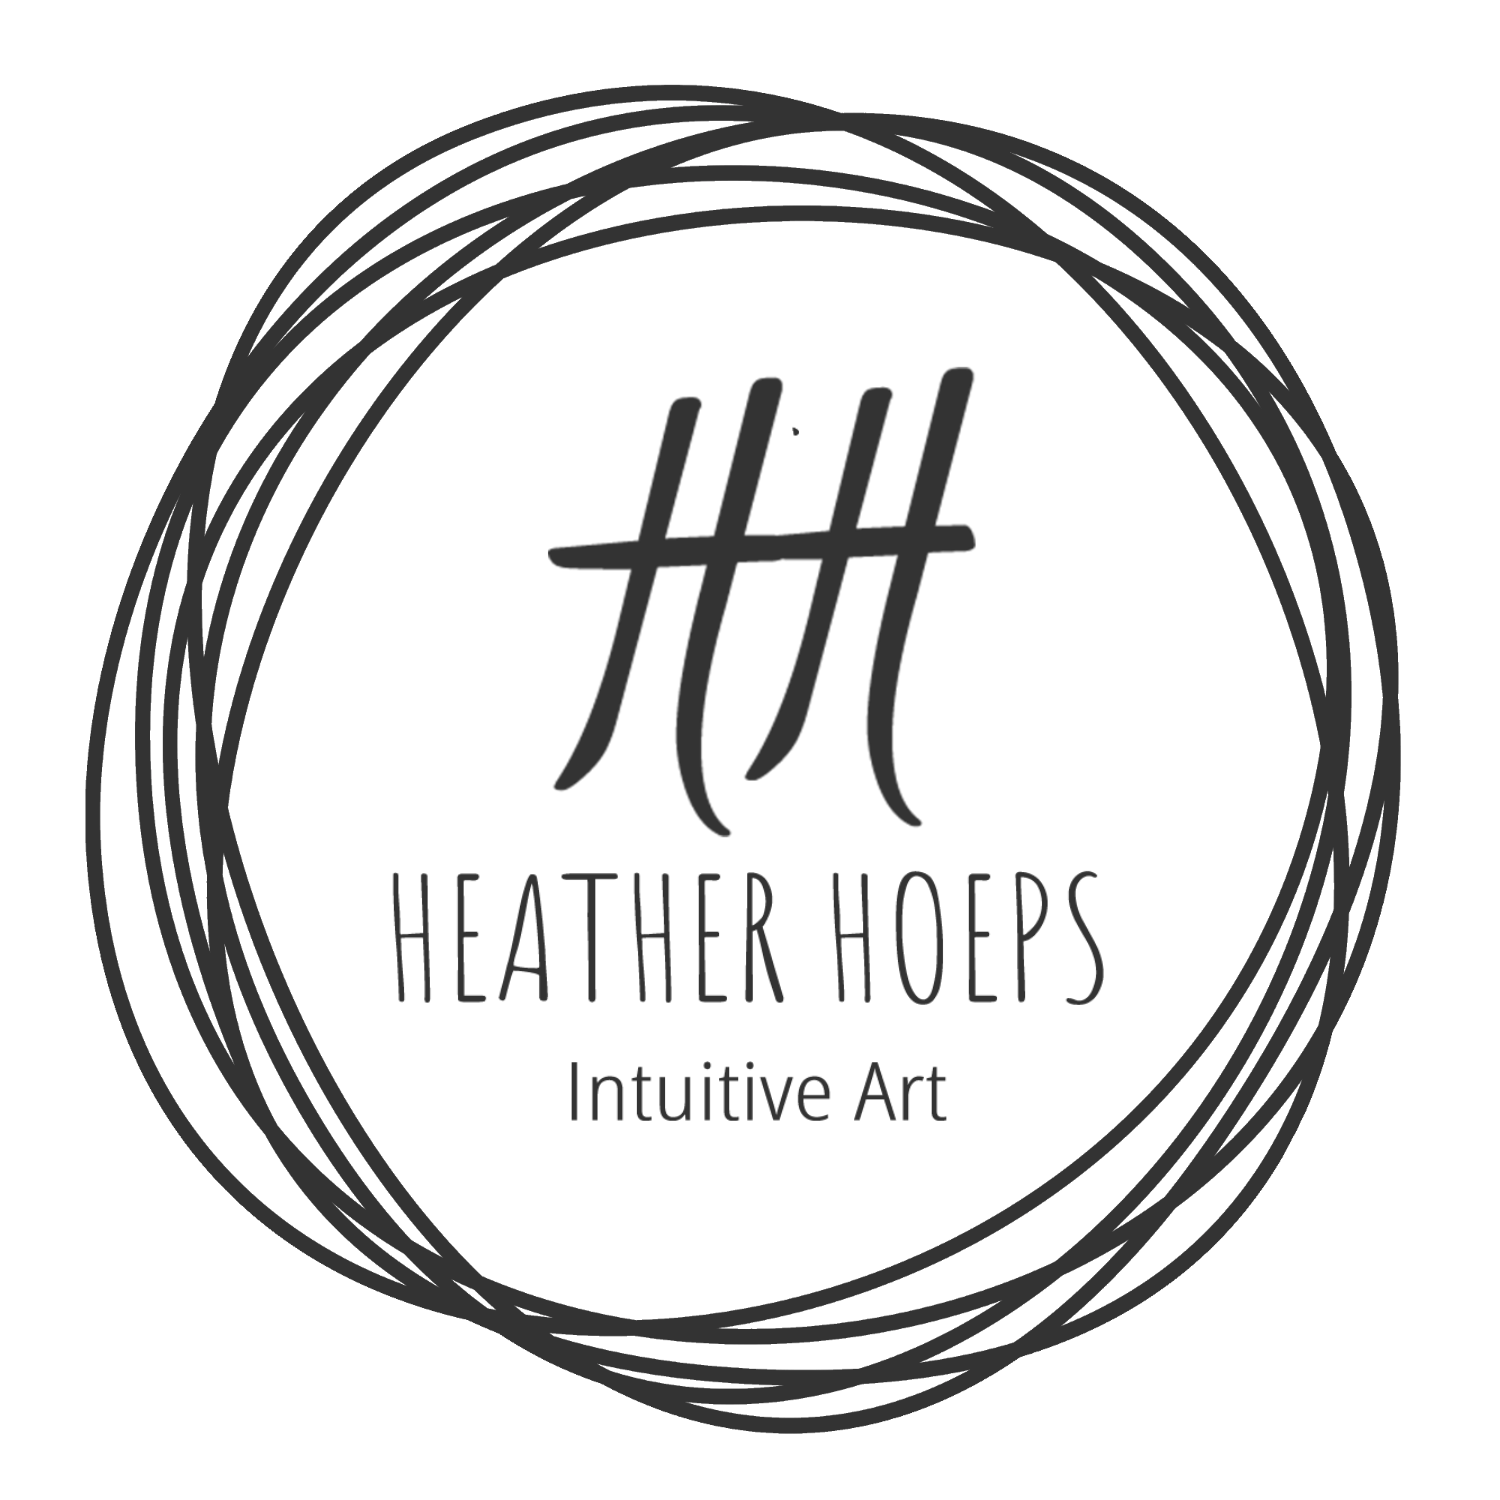 Logo Heather Hoeps